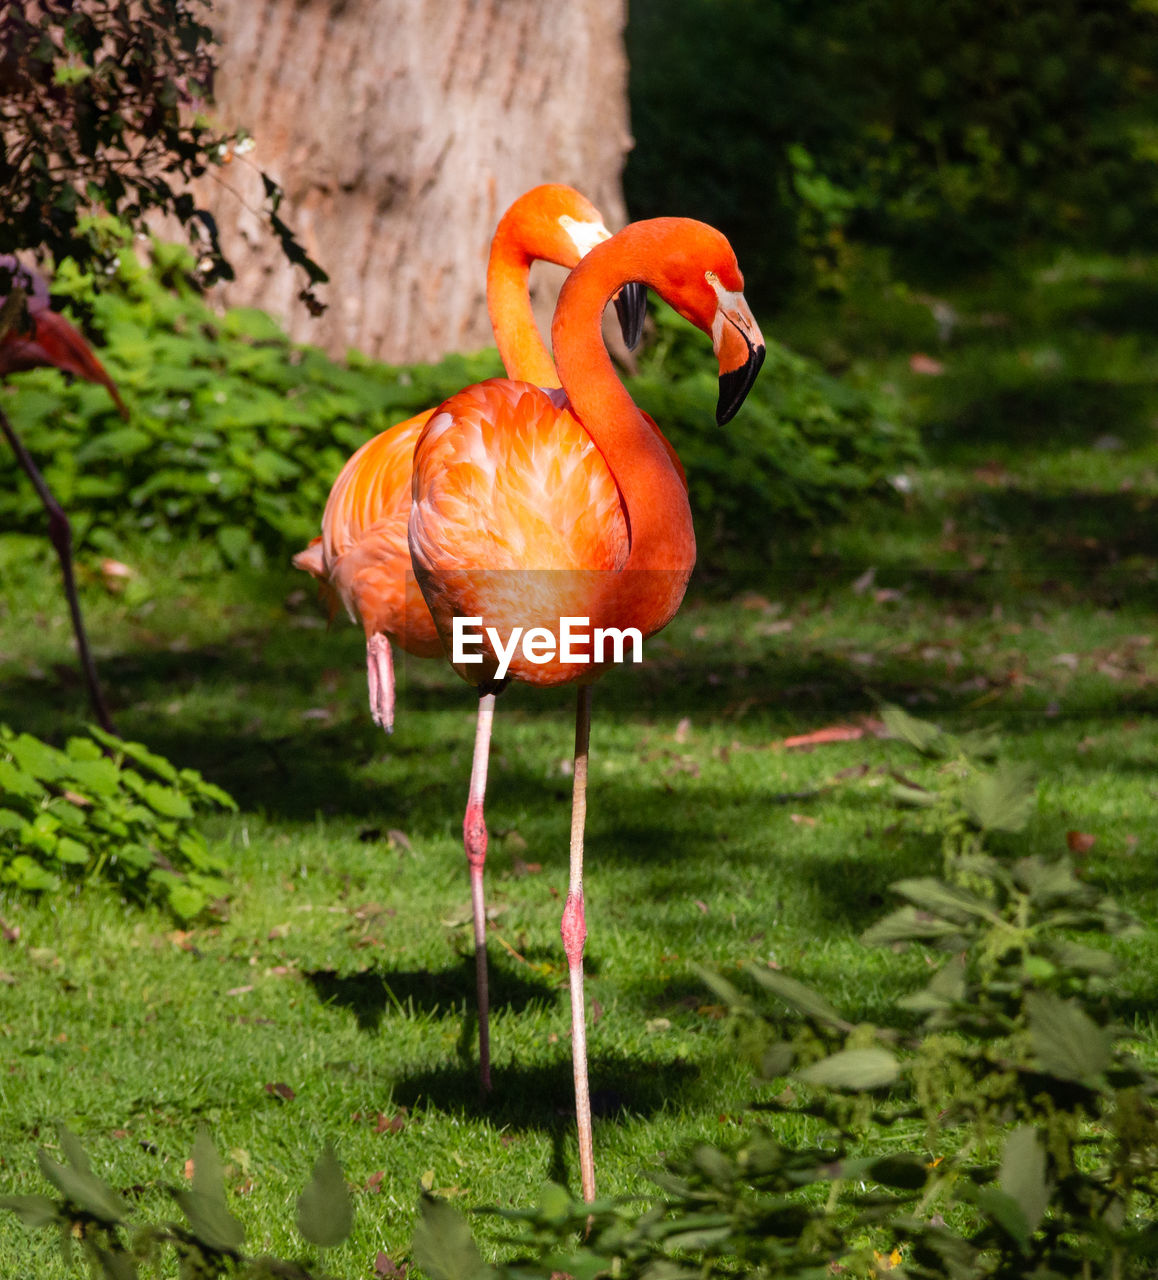 bird, animal themes, animal, vertebrate, animals in the wild, orange color, animal wildlife, plant, flamingo, no people, standing, one animal, day, nature, land, focus on foreground, grass, full length, beauty in nature, green color, outdoors, beak, animal neck